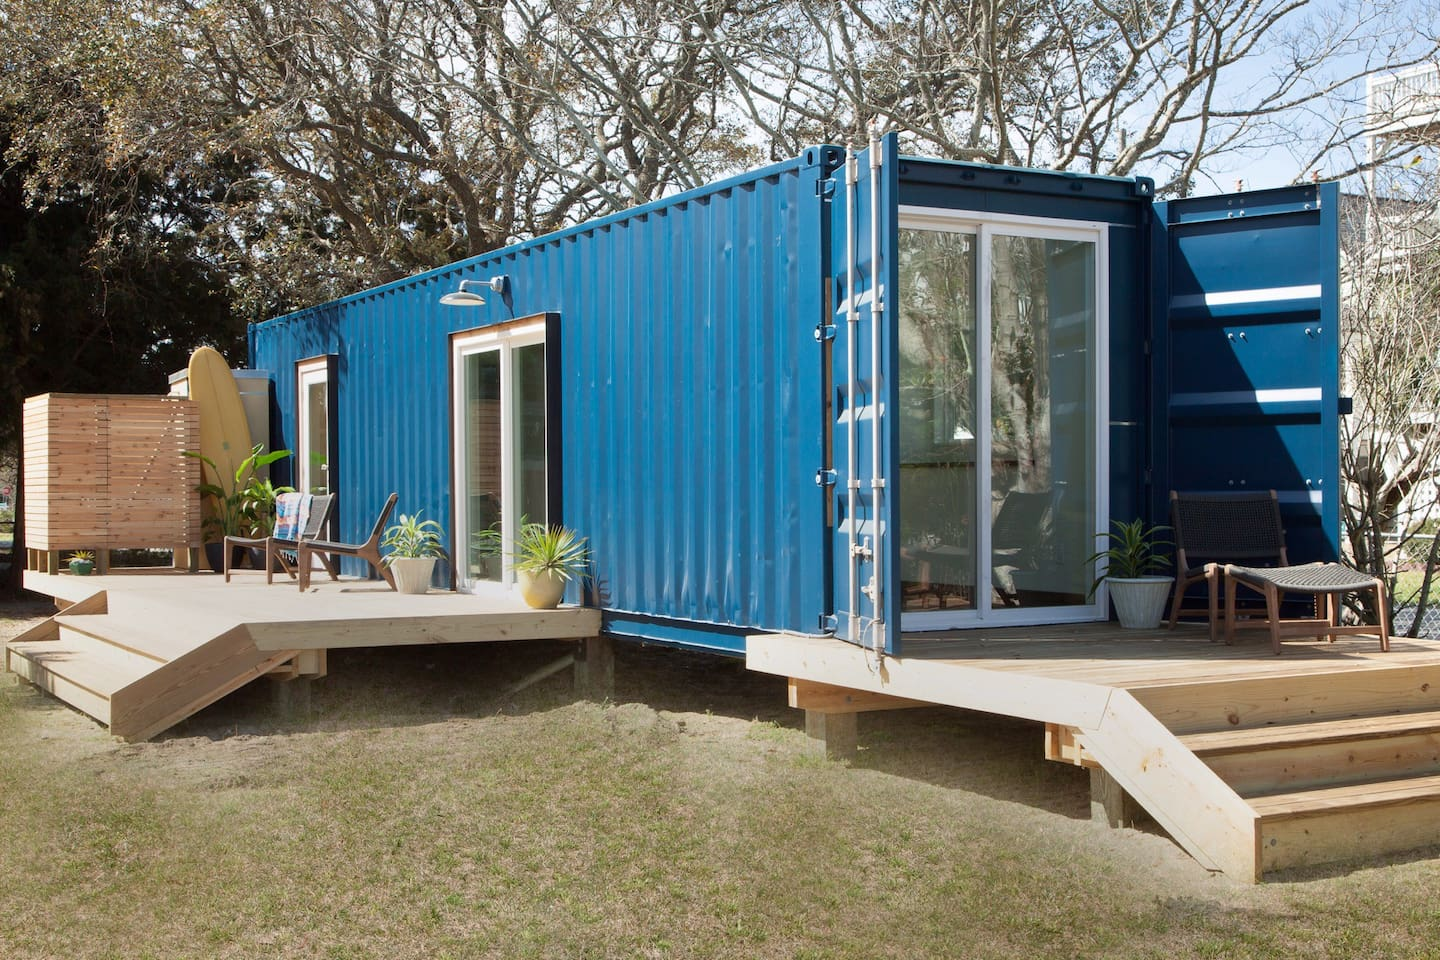 Modern Beach Container Home 2 Tiny houses for Rent in Carolina